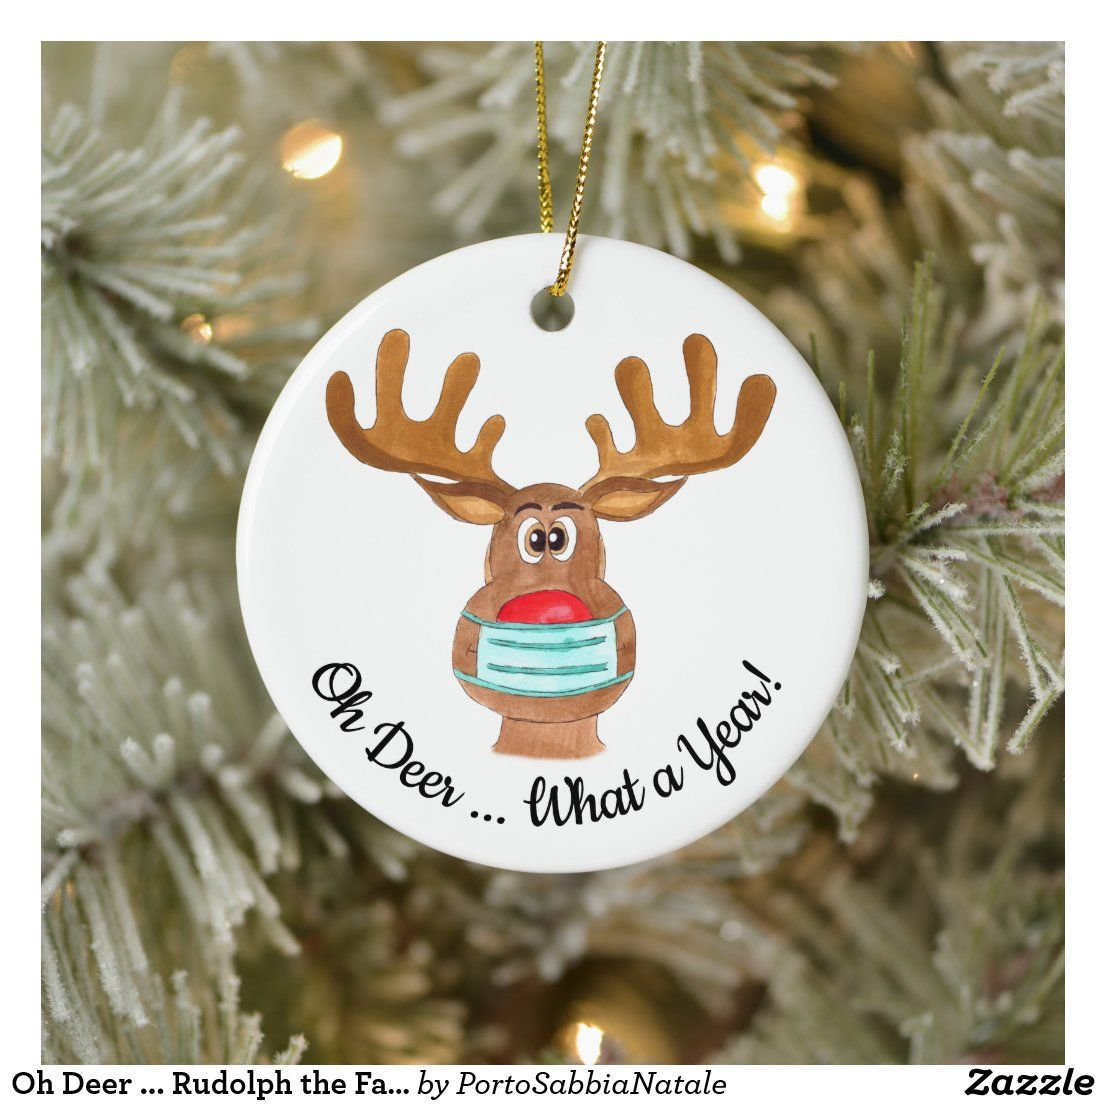 Oh Deer Rudolph The Face Masked Reindeer Ceramic Ornament Zazzle Com Christmas Humor Diy Christmas Ornaments Hanging Christmas Stockings